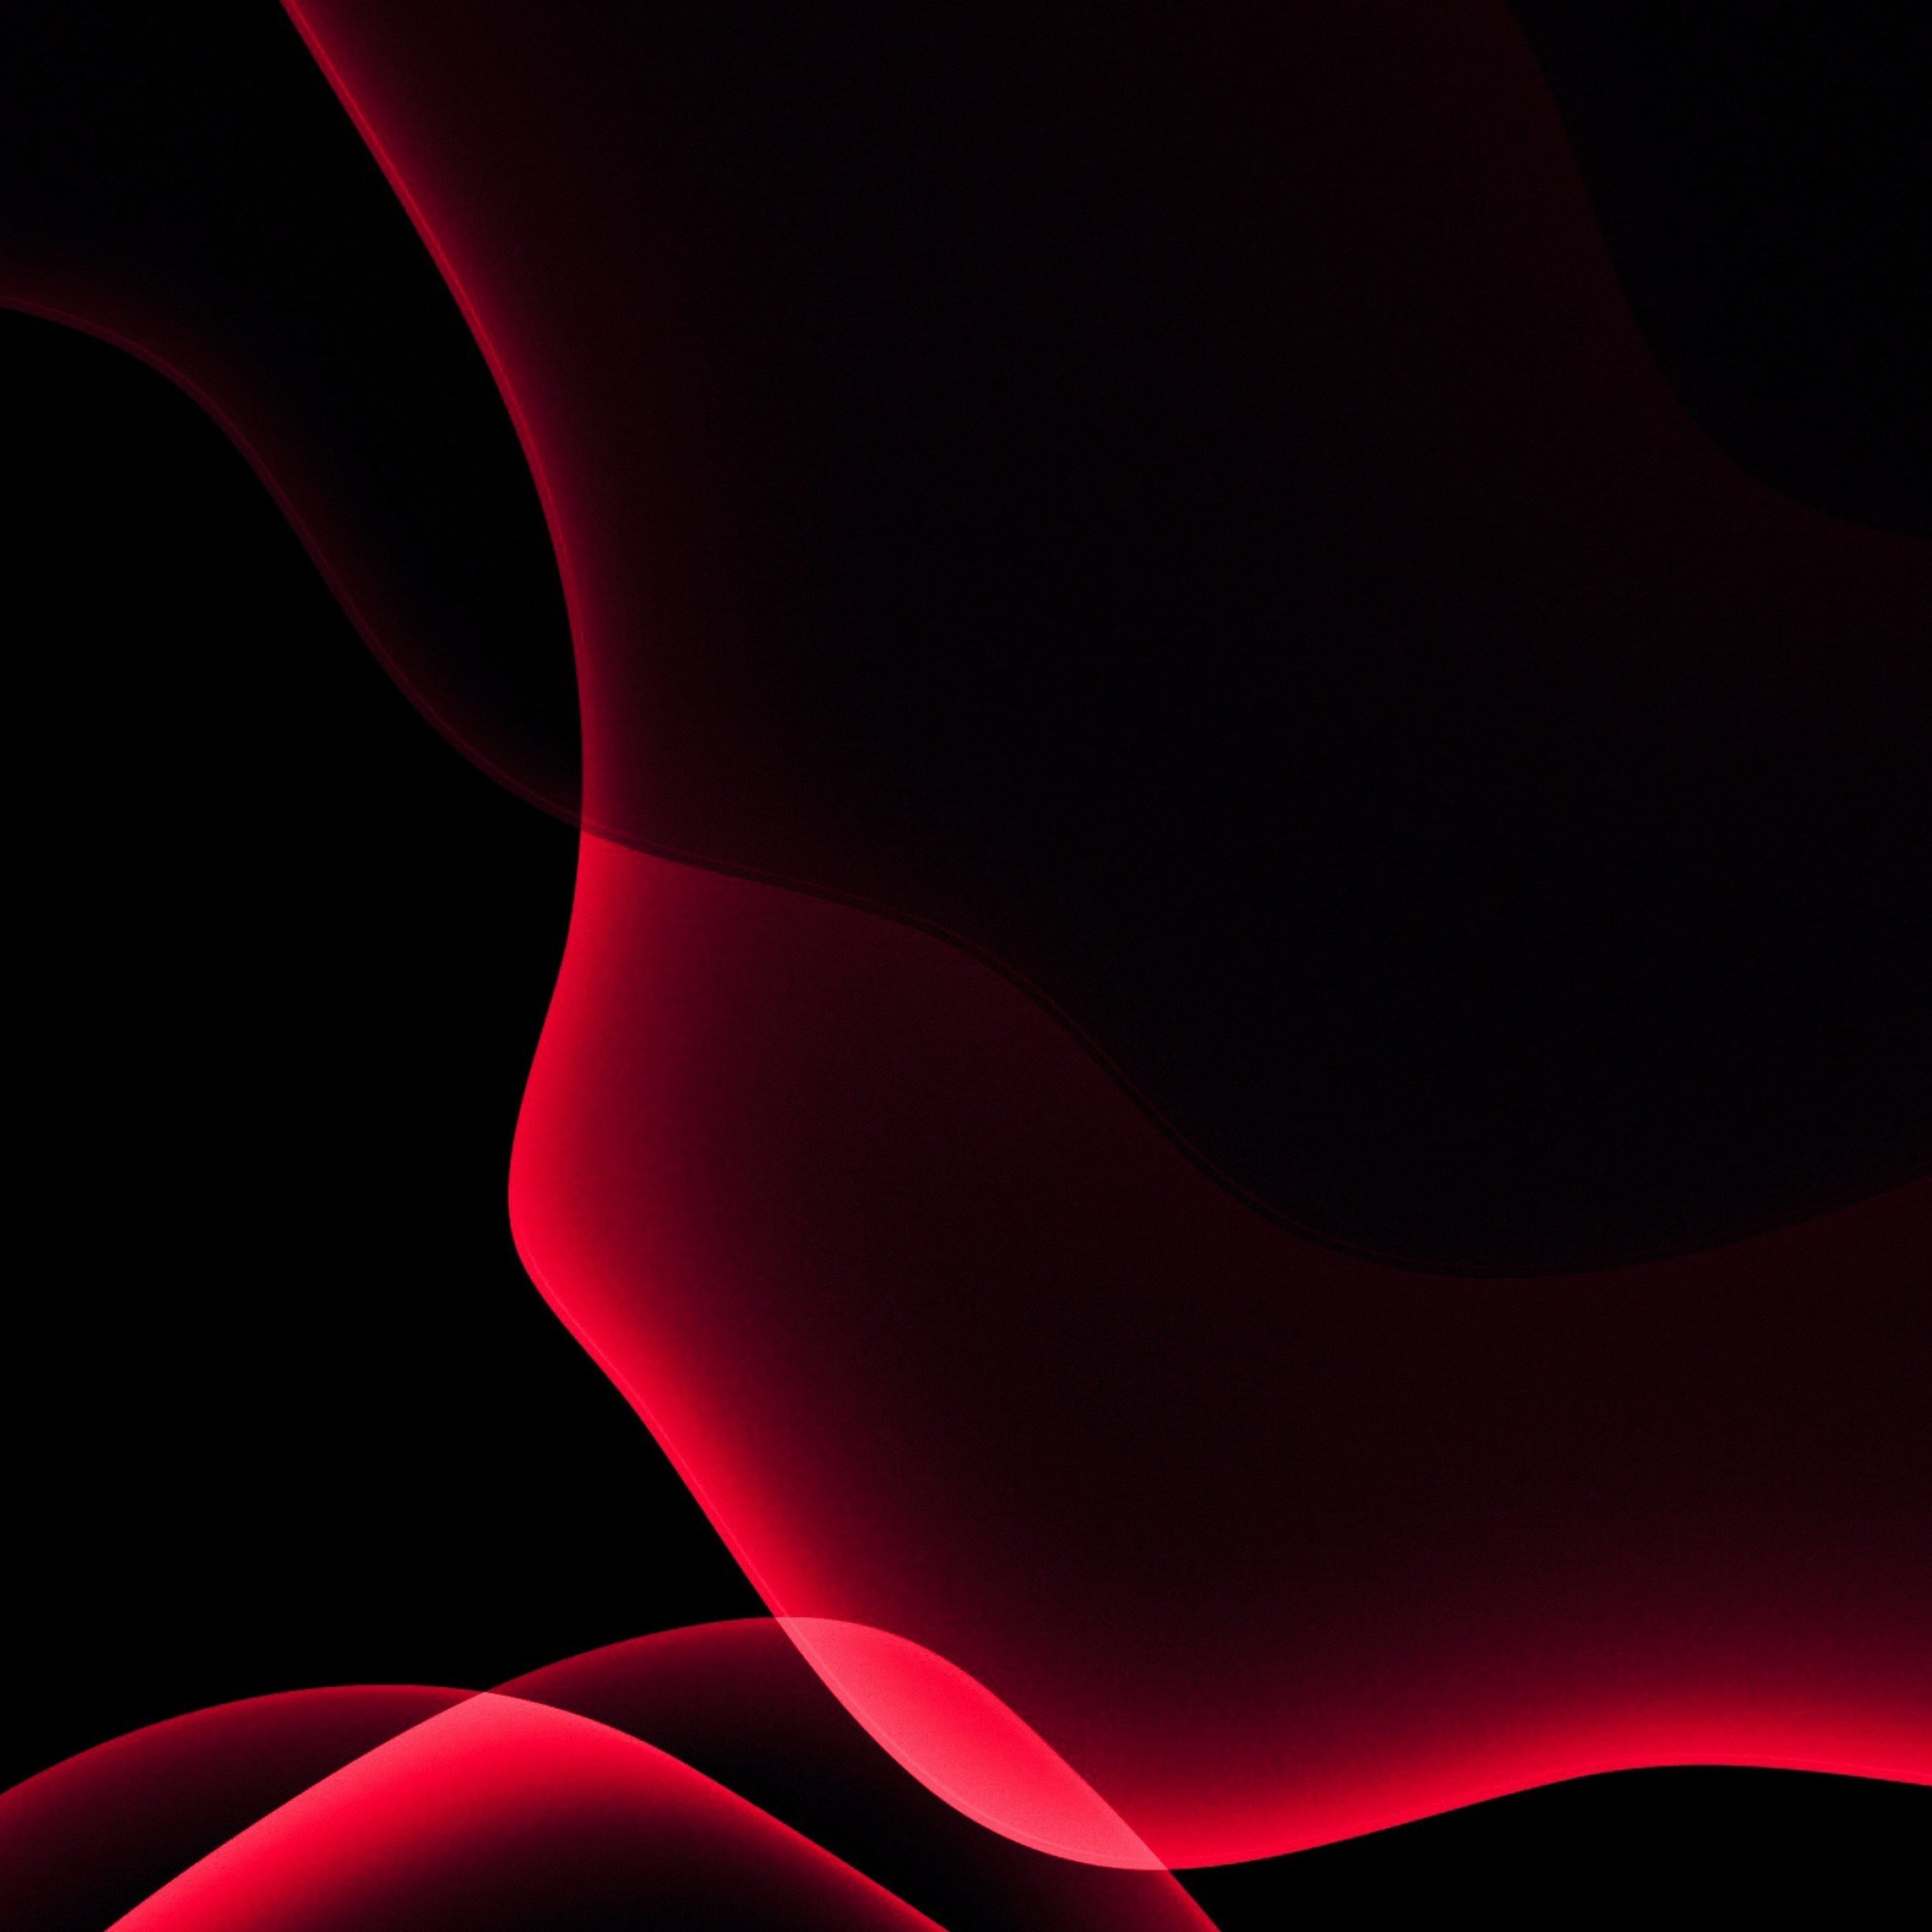 iOS 13 red abstract wallpaper 2048x2048